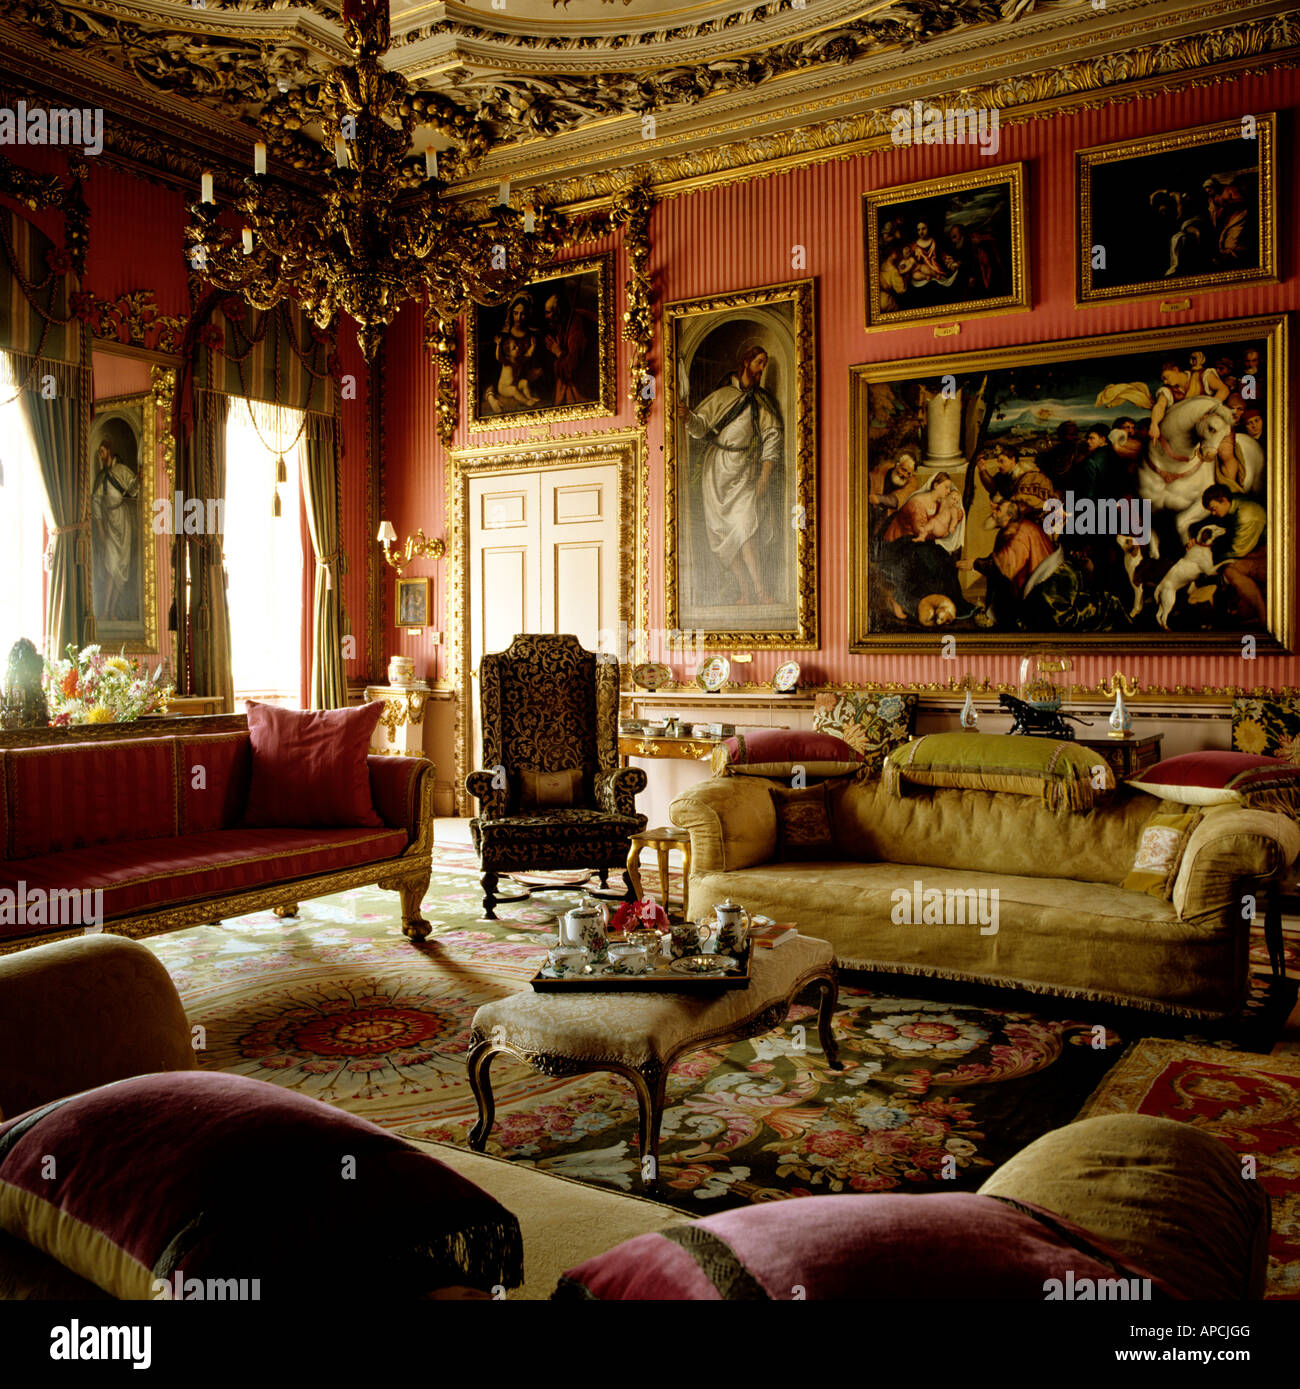 Burghley House Interior Stock Photos & Burghley House